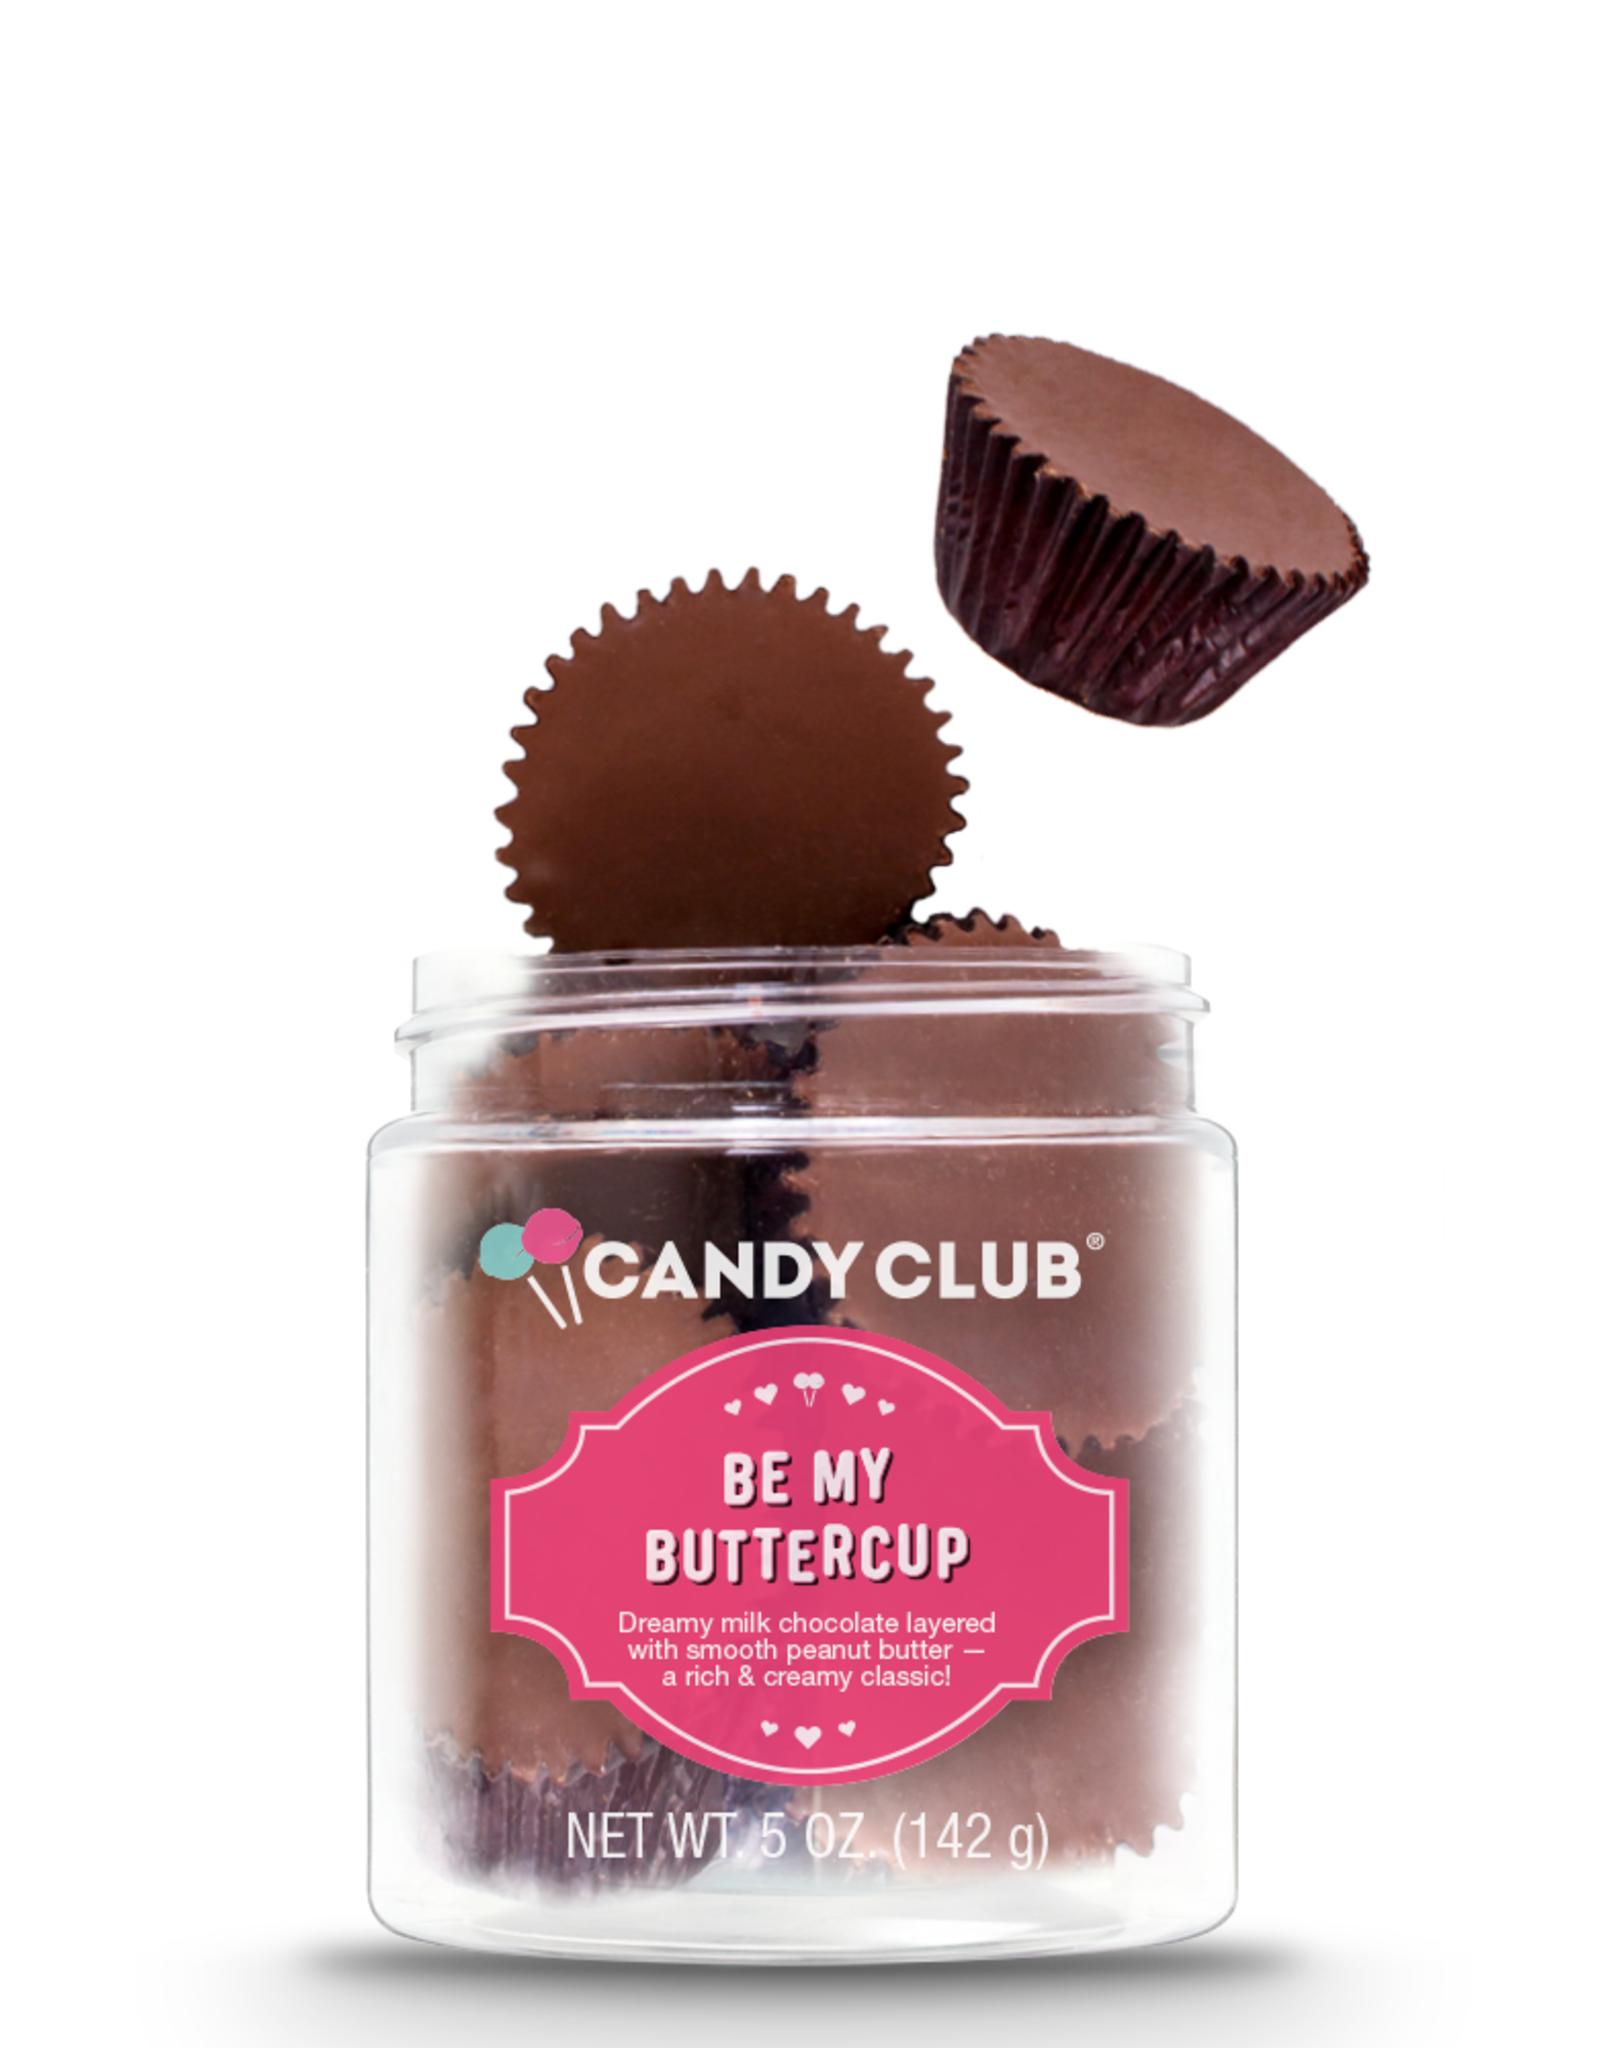 Candy Club Be My Buttercup